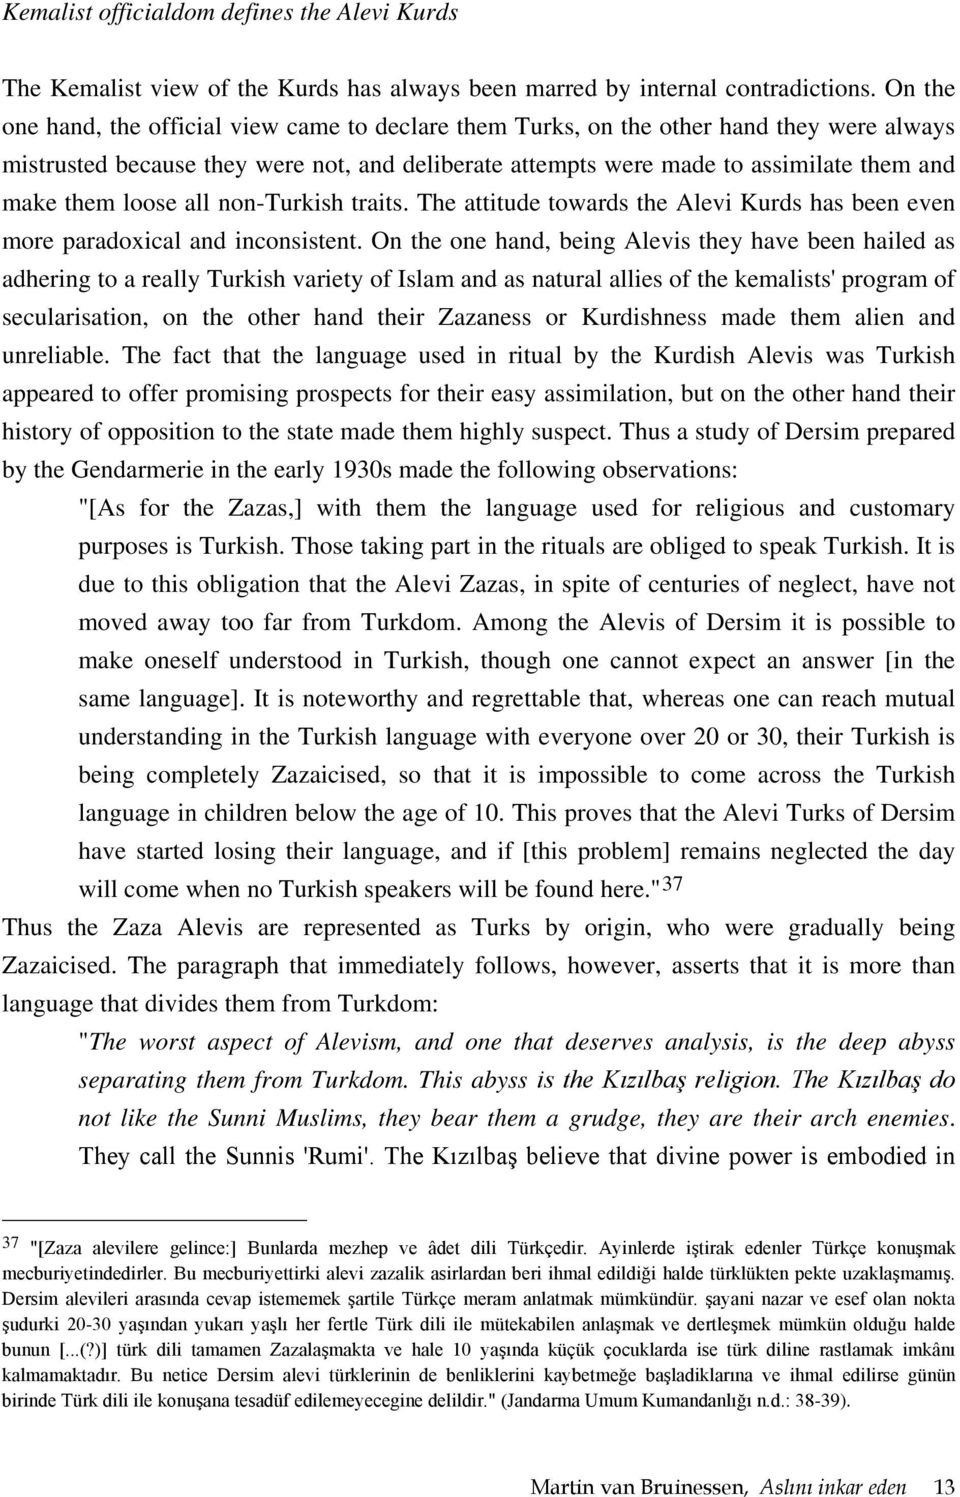 loose all non-turkish traits. The attitude towards the Alevi Kurds has been even more paradoxical and inconsistent.